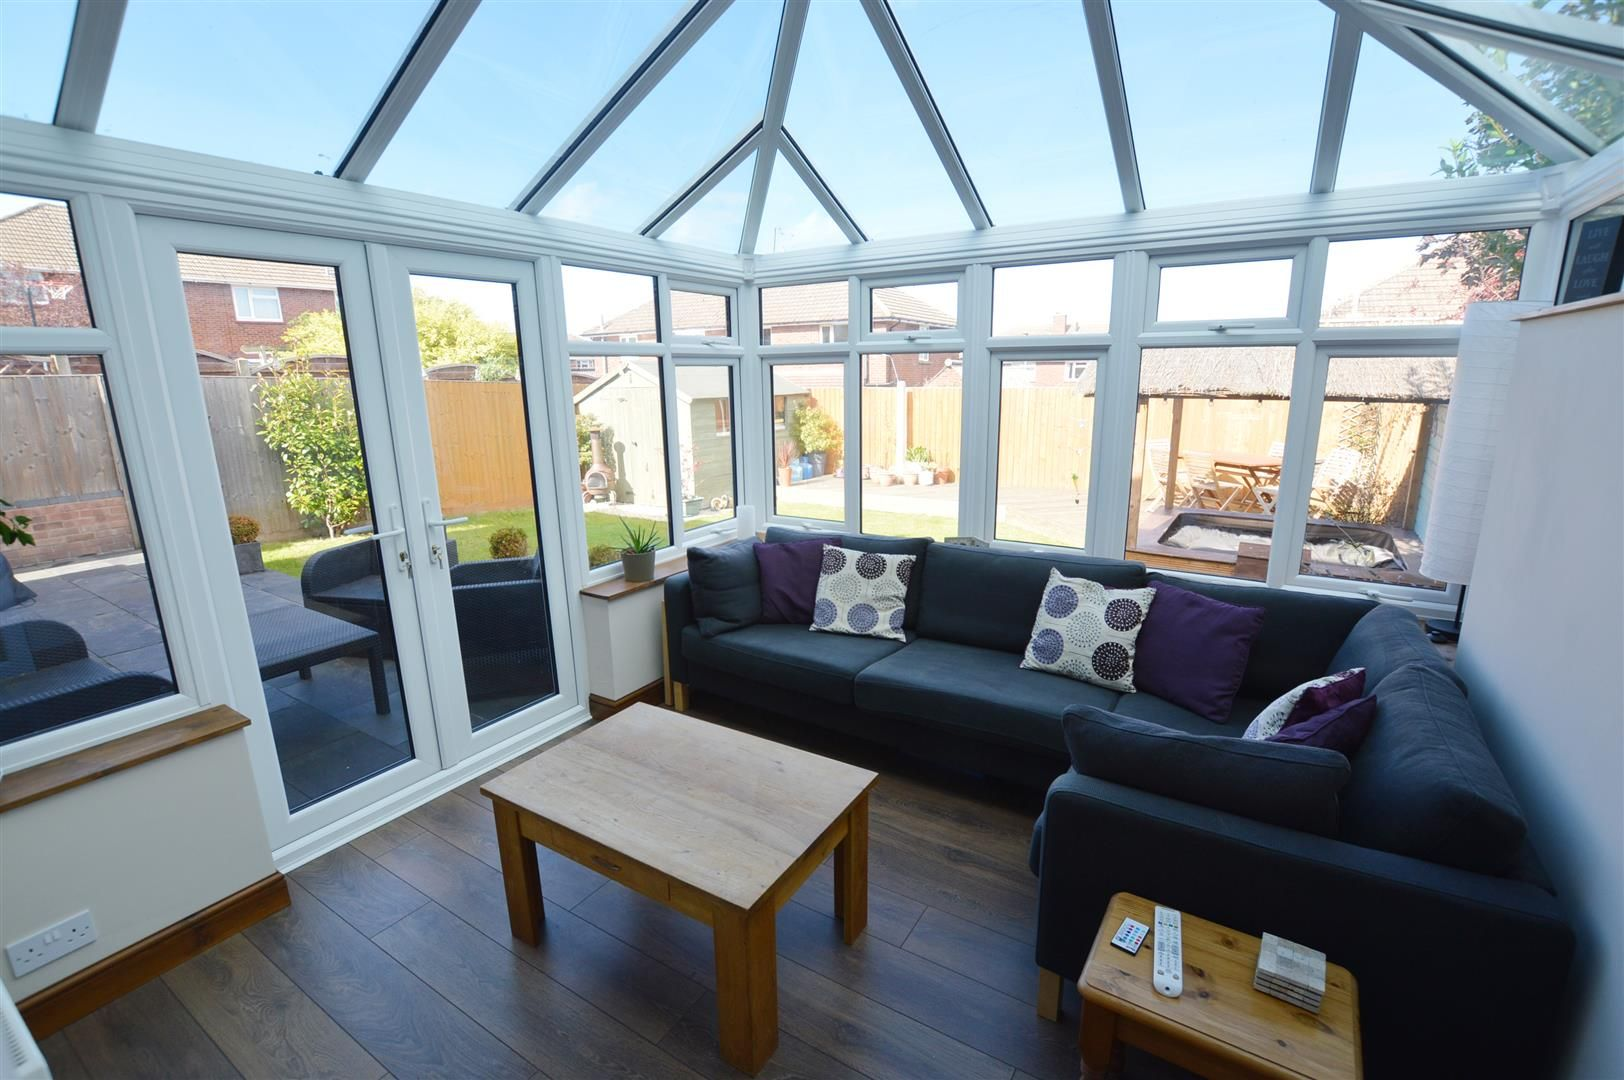 4 bed semi-detached for sale in Hereford 6